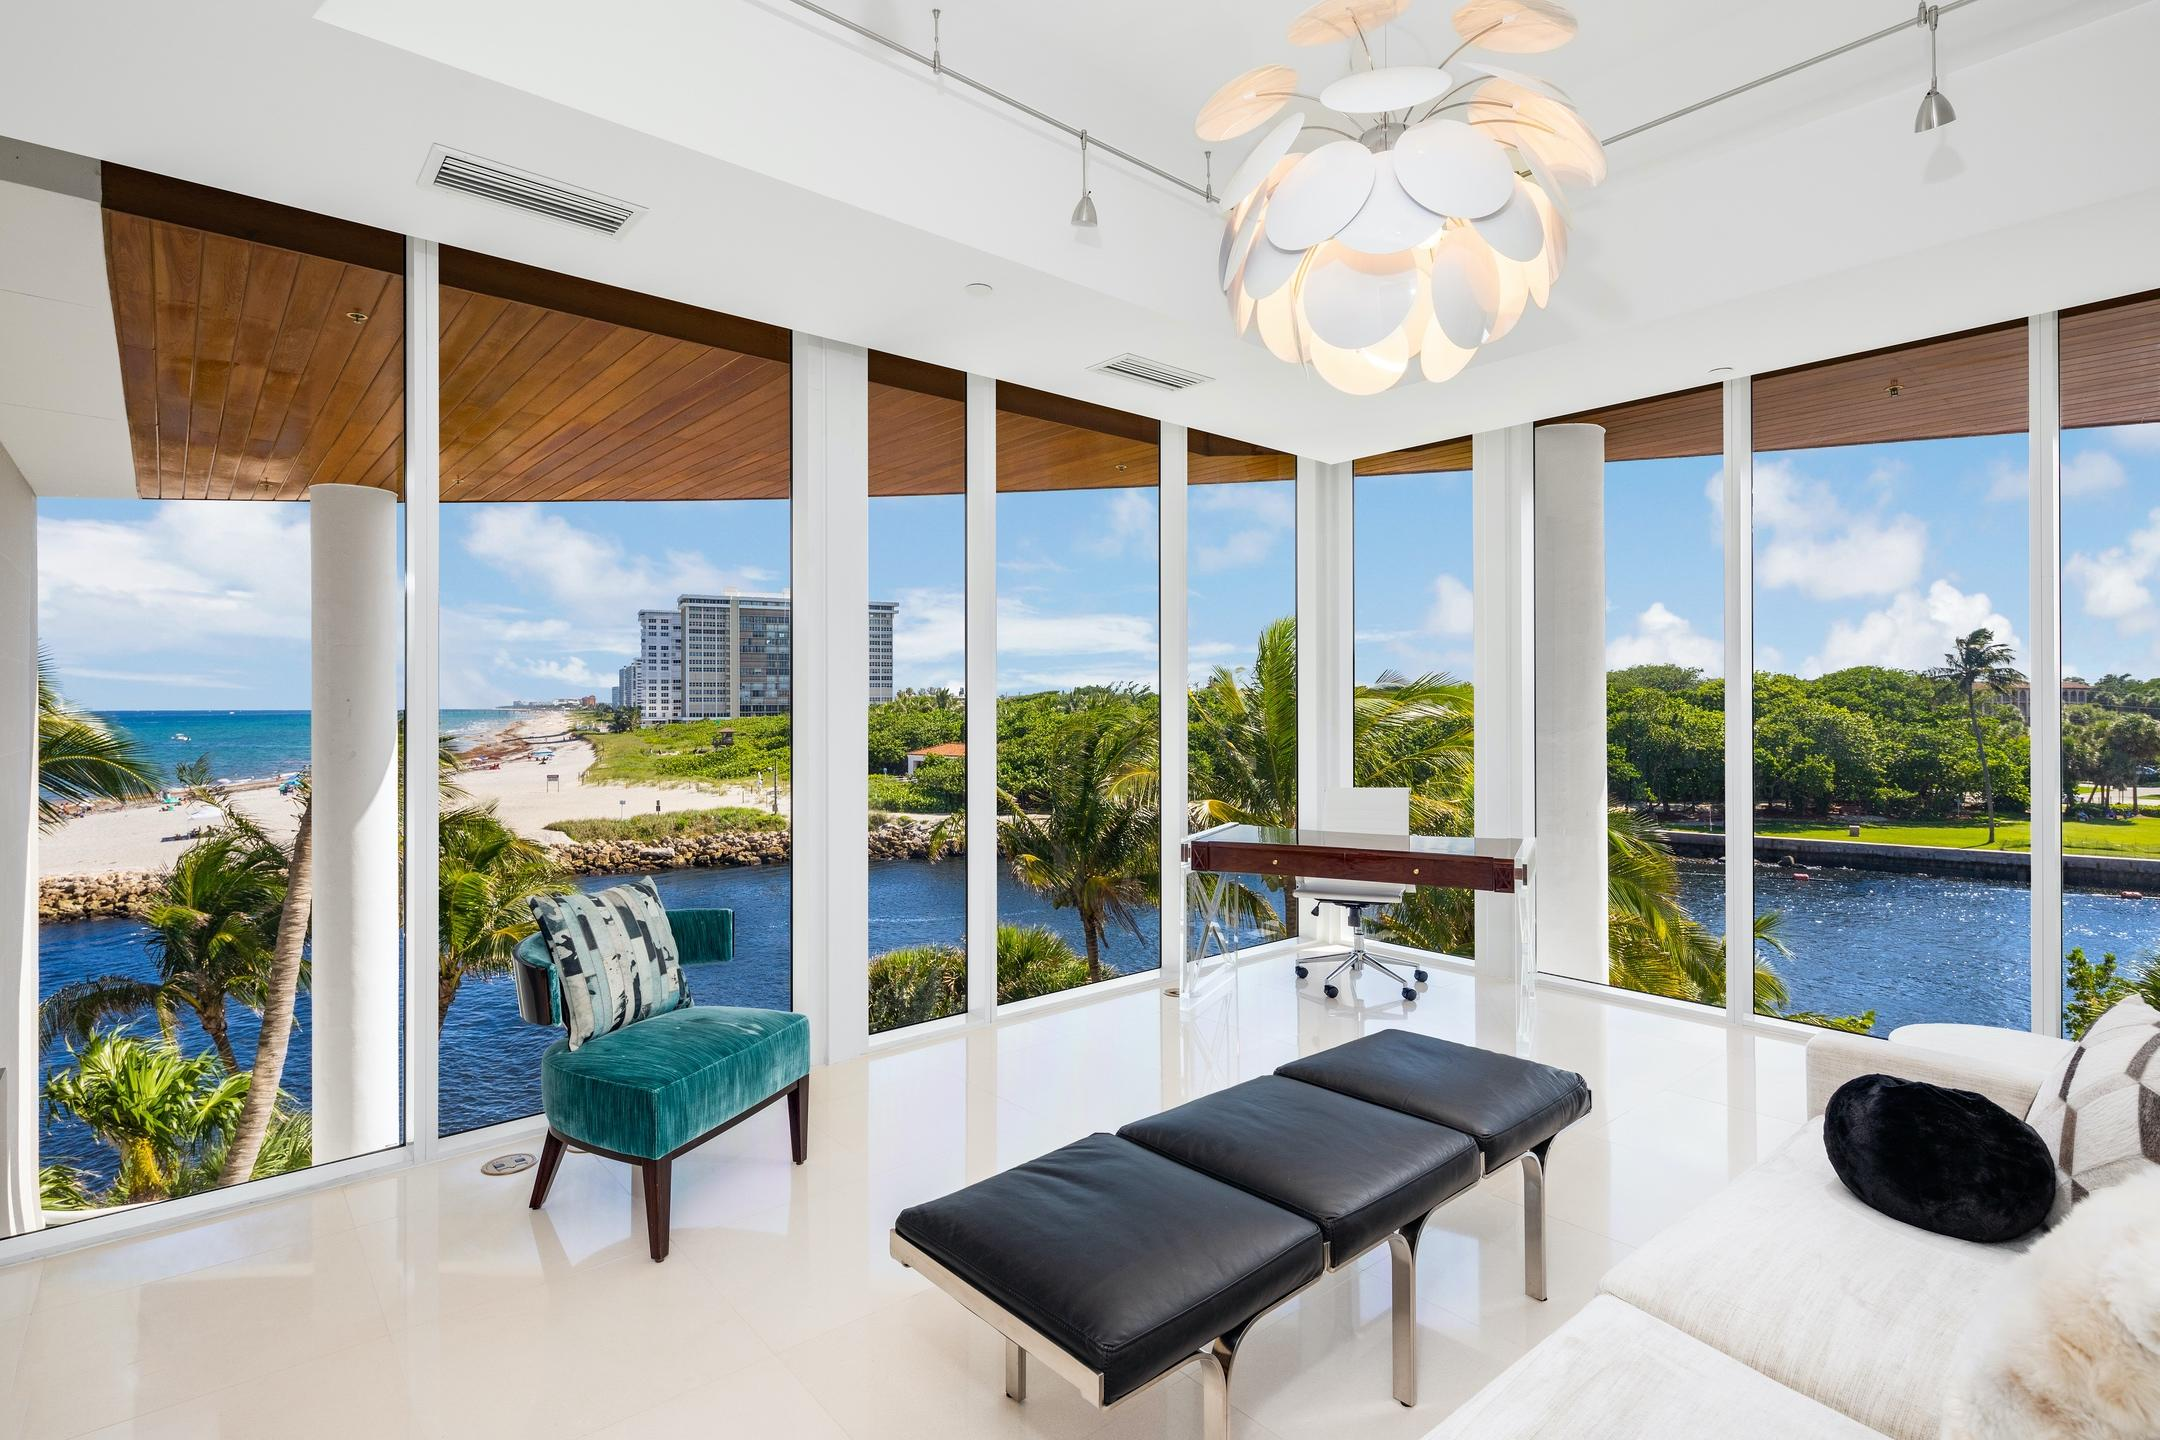 Home for sale in One Thousand Ocean Boca Raton Florida